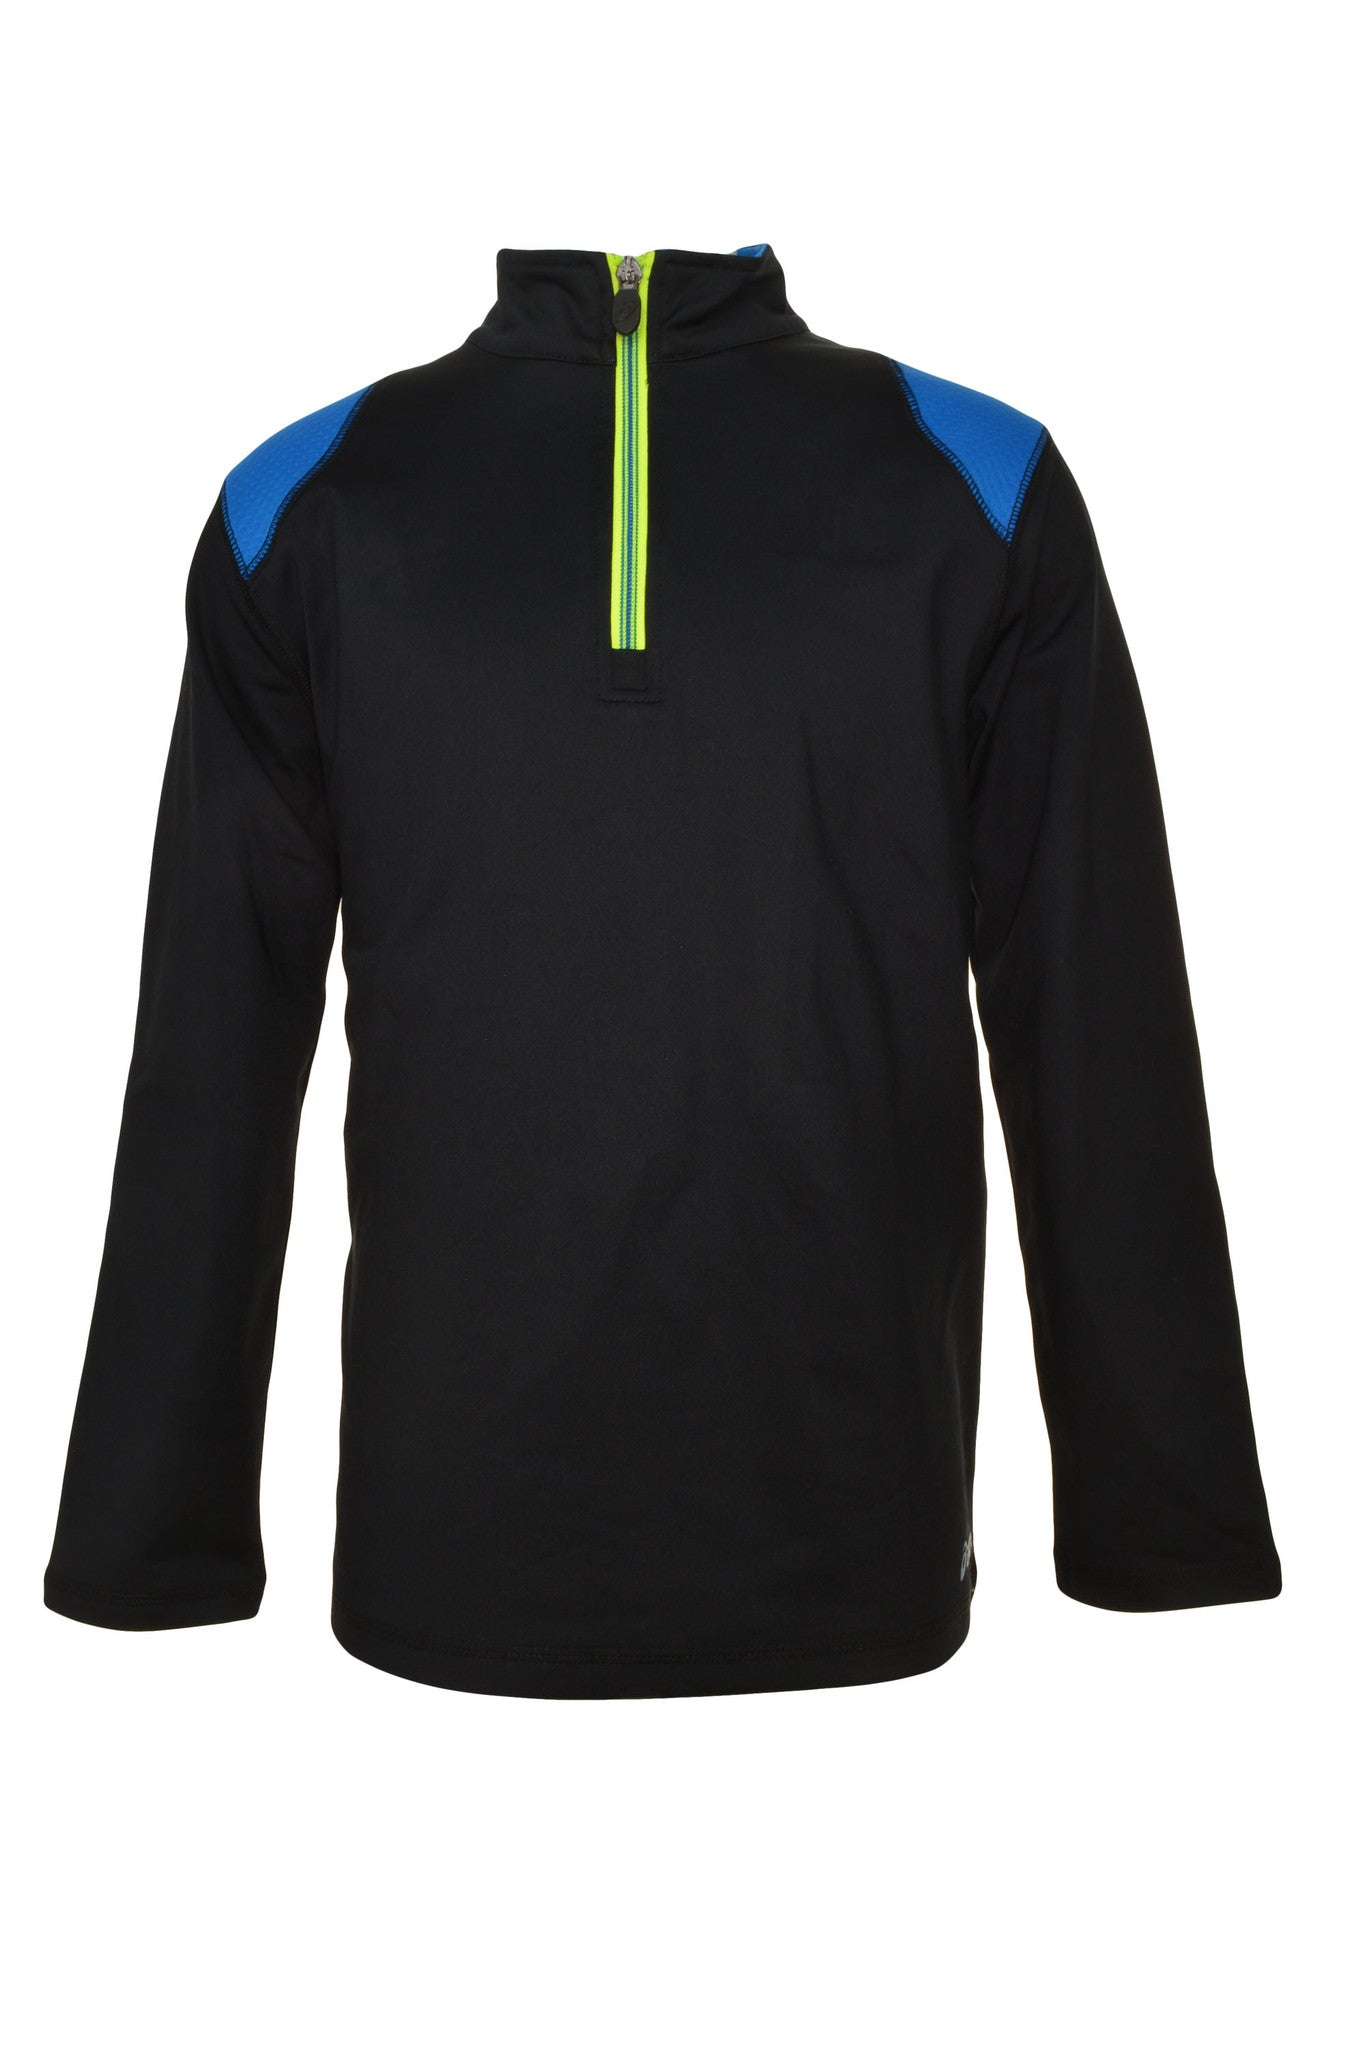 Asics Youth Quarter Zip Pullover Jacket,Sweaters,Asics - Discount Divas